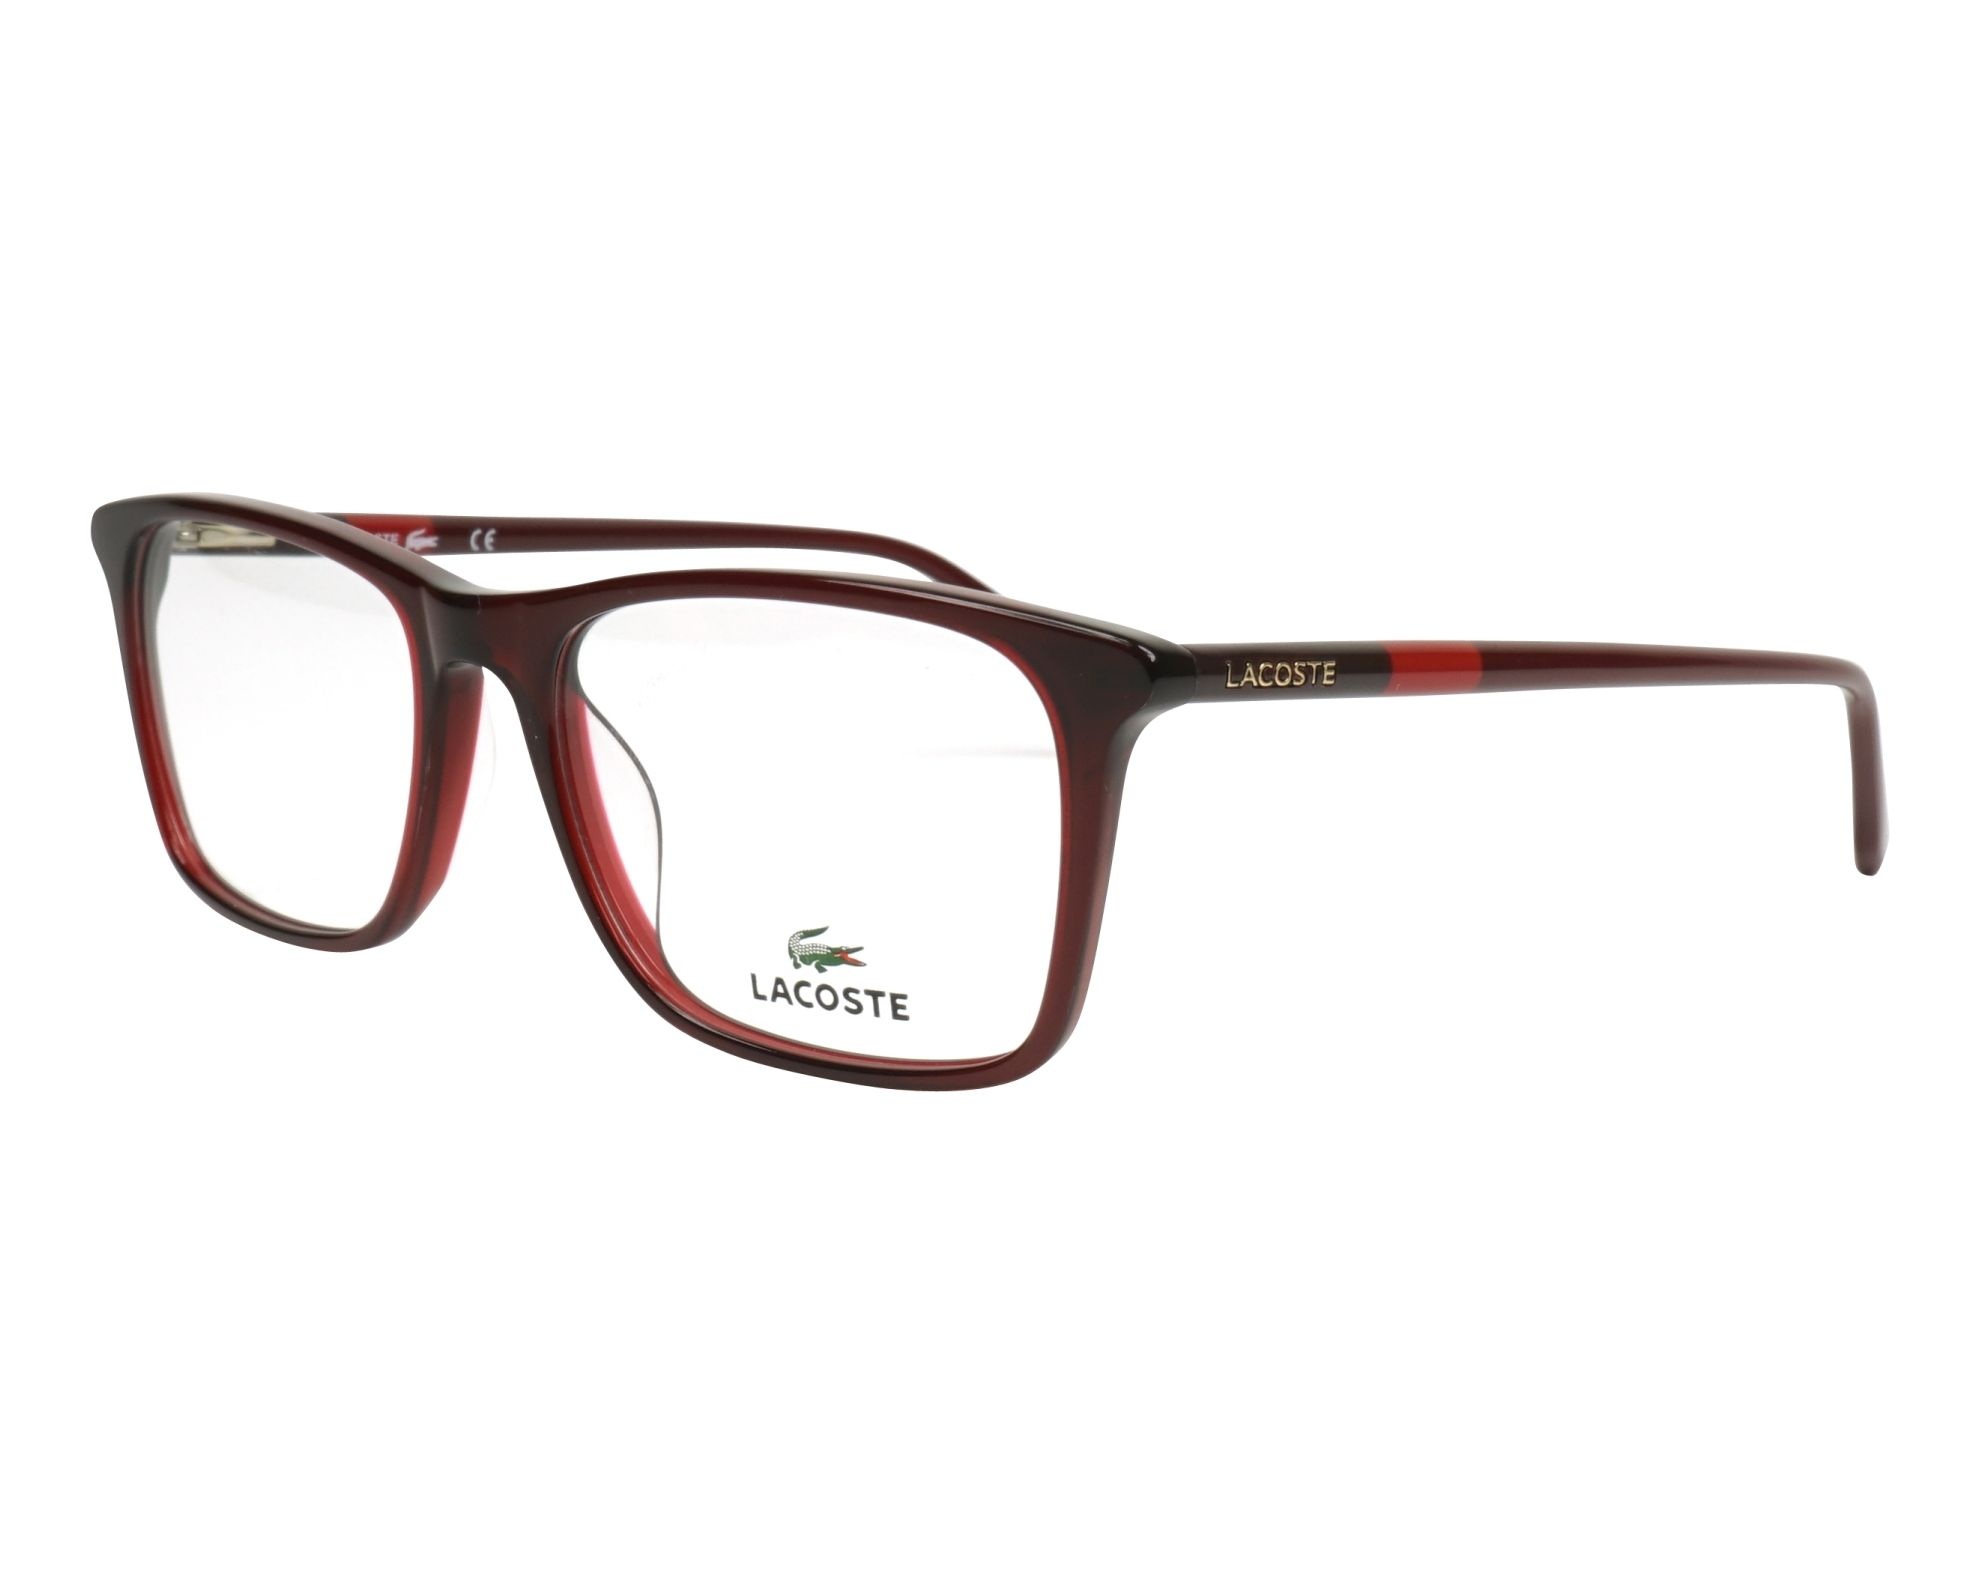 Lacoste Brille » L2752«, rot, 615 - rot